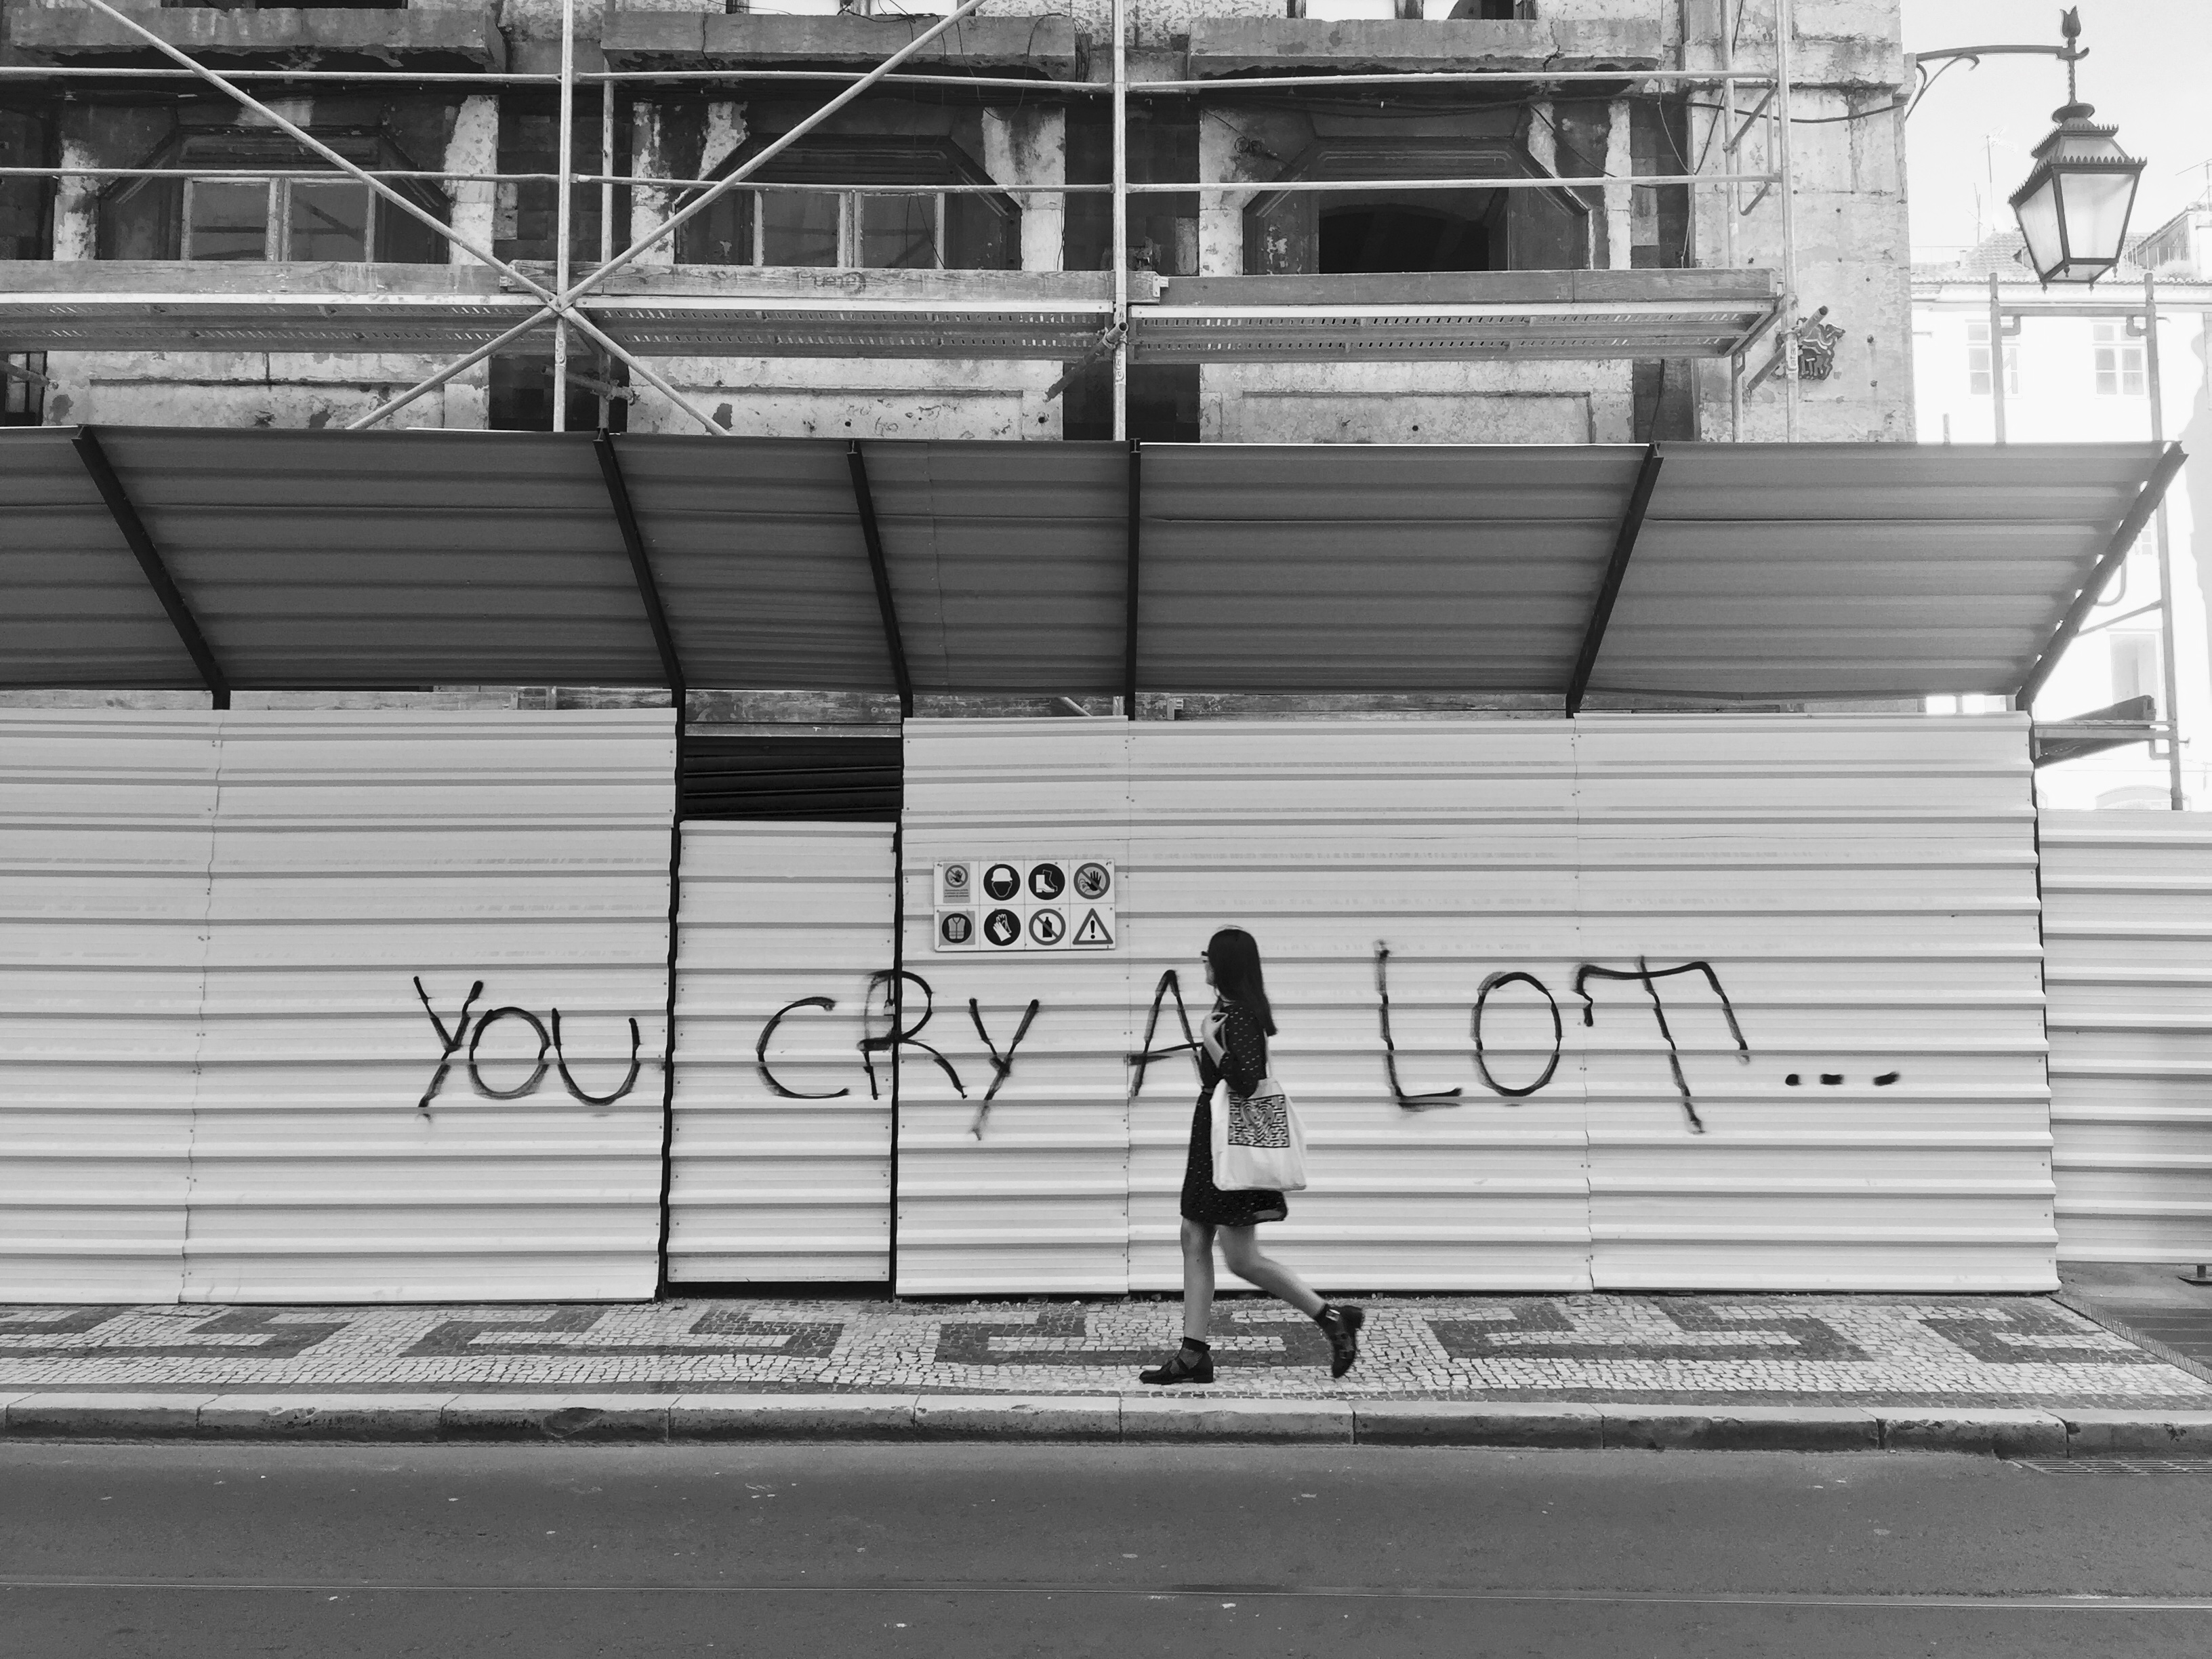 you cry a lot